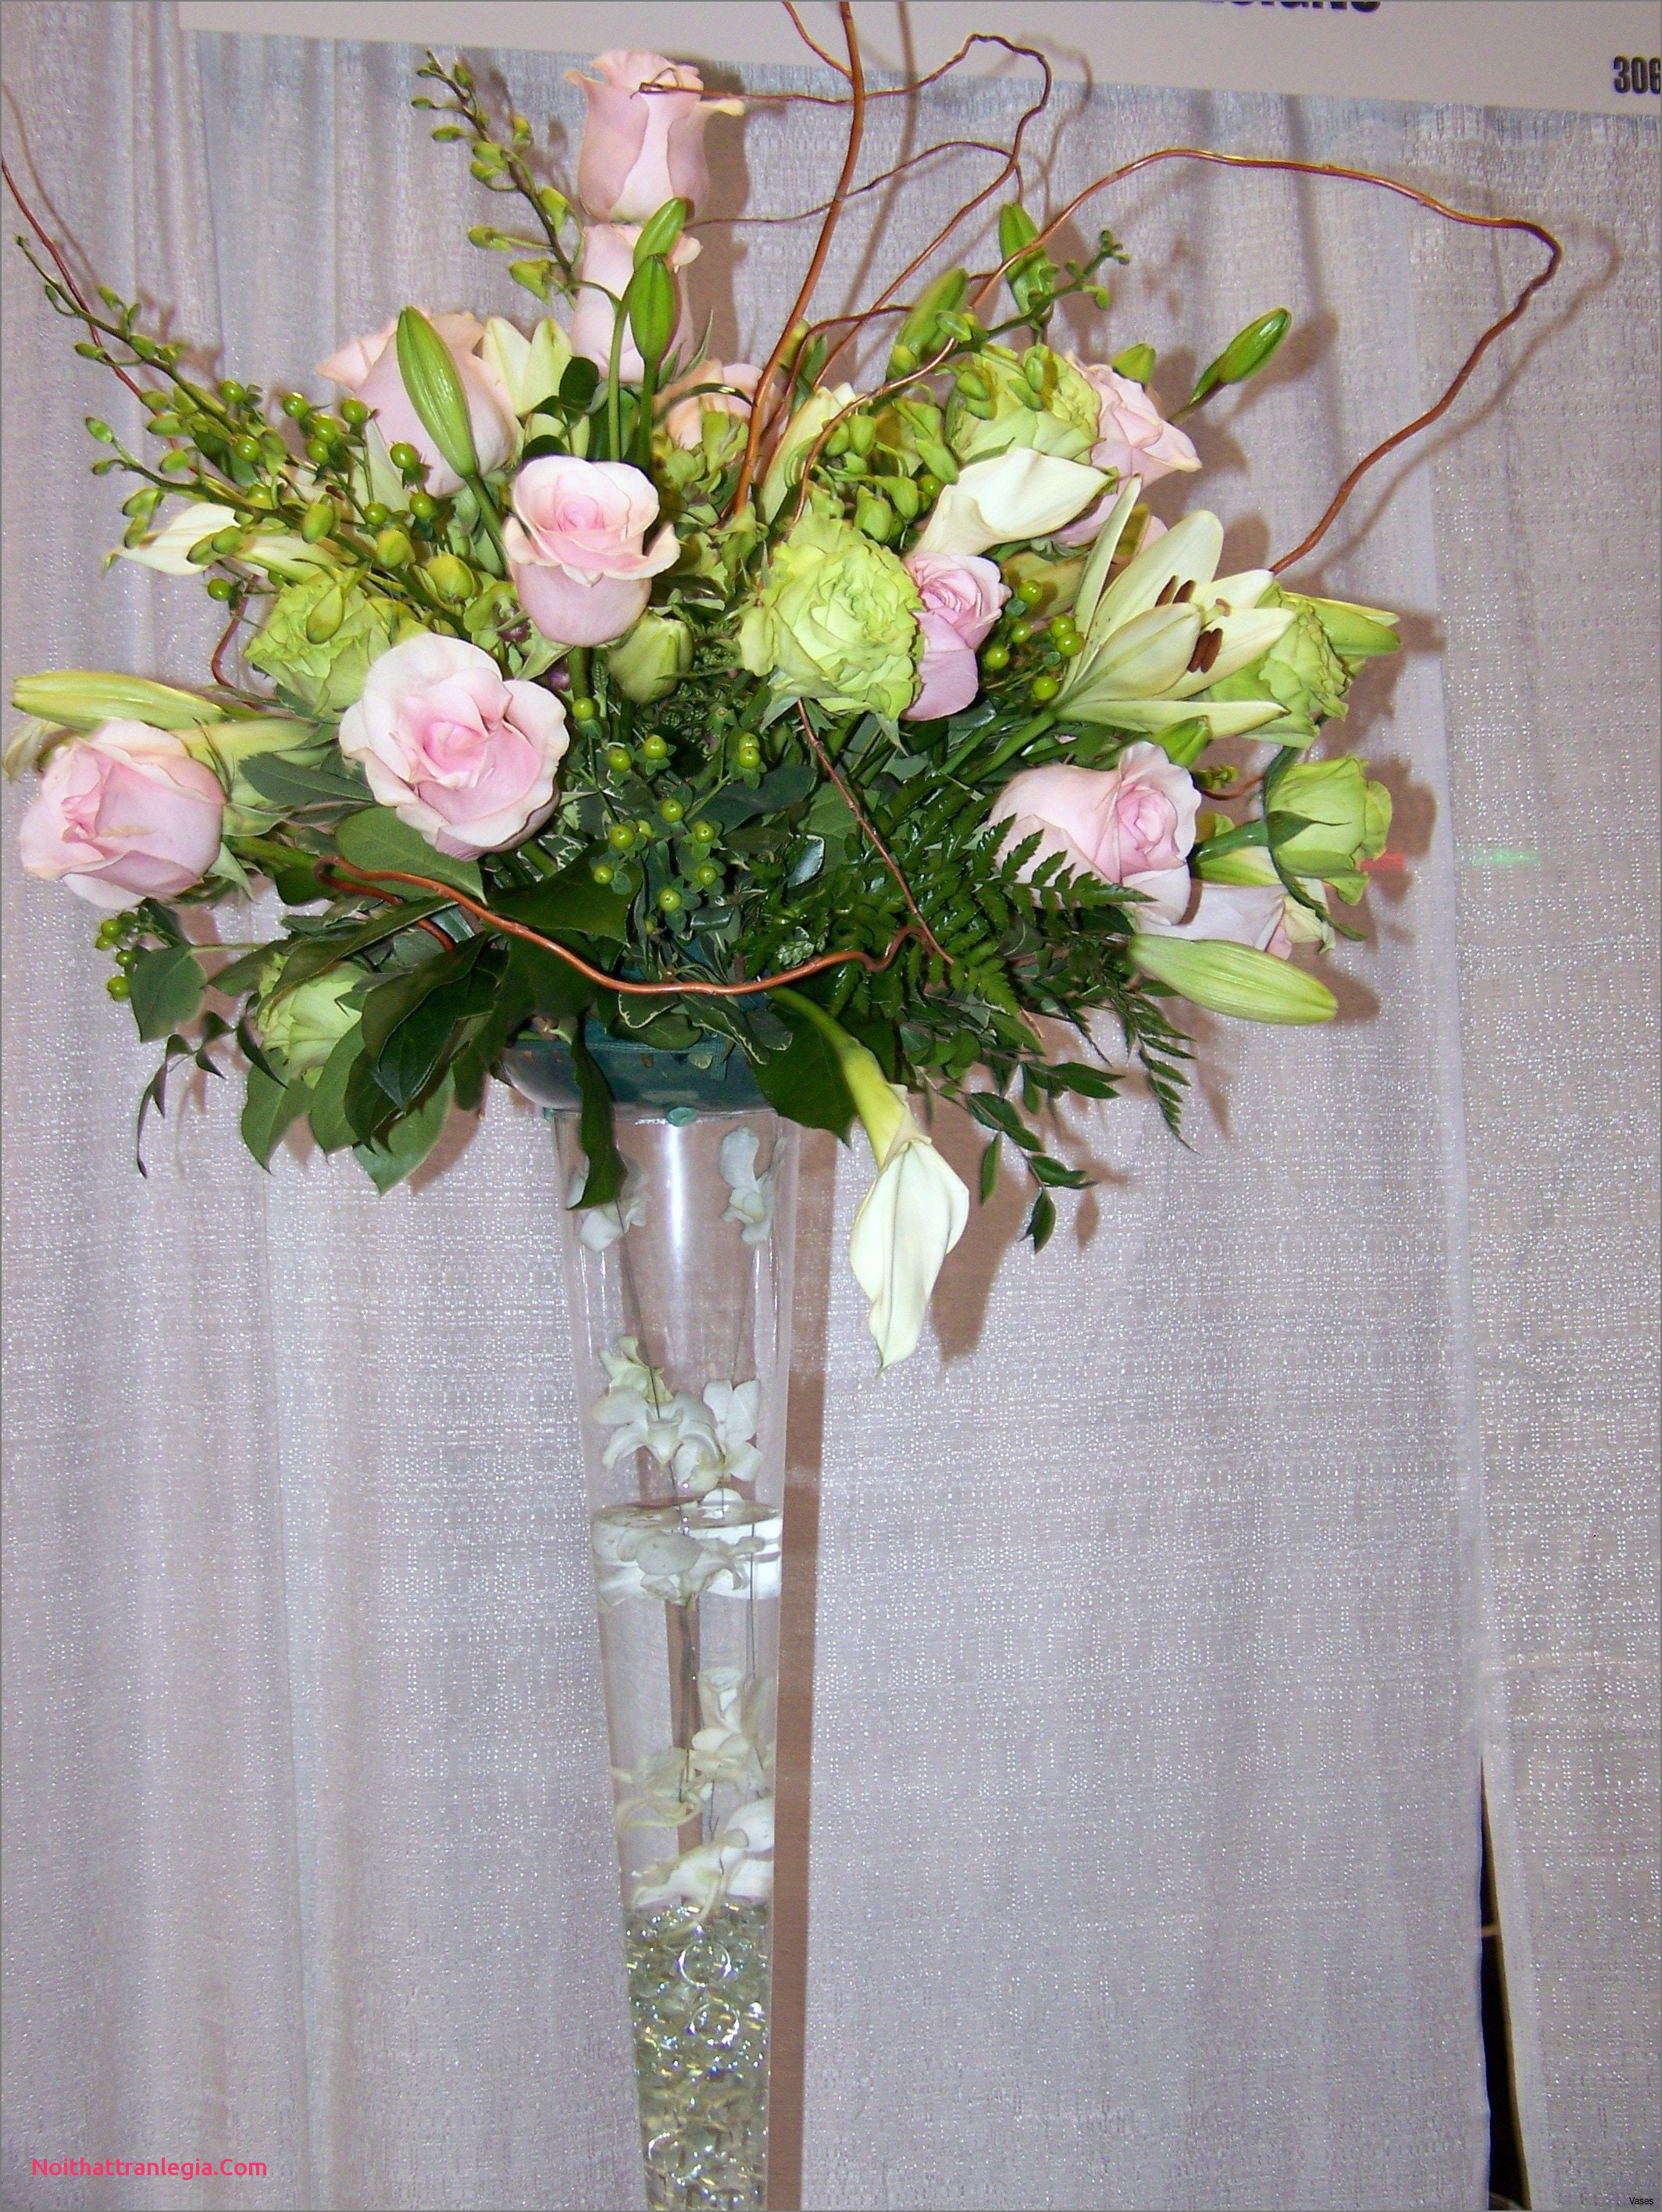 decorative flower vase online of 20 how to clean flower vases noithattranlegia vases design with full size of wedding wedding flower centerpieces inspirational h vases ideas for floral arrangements in